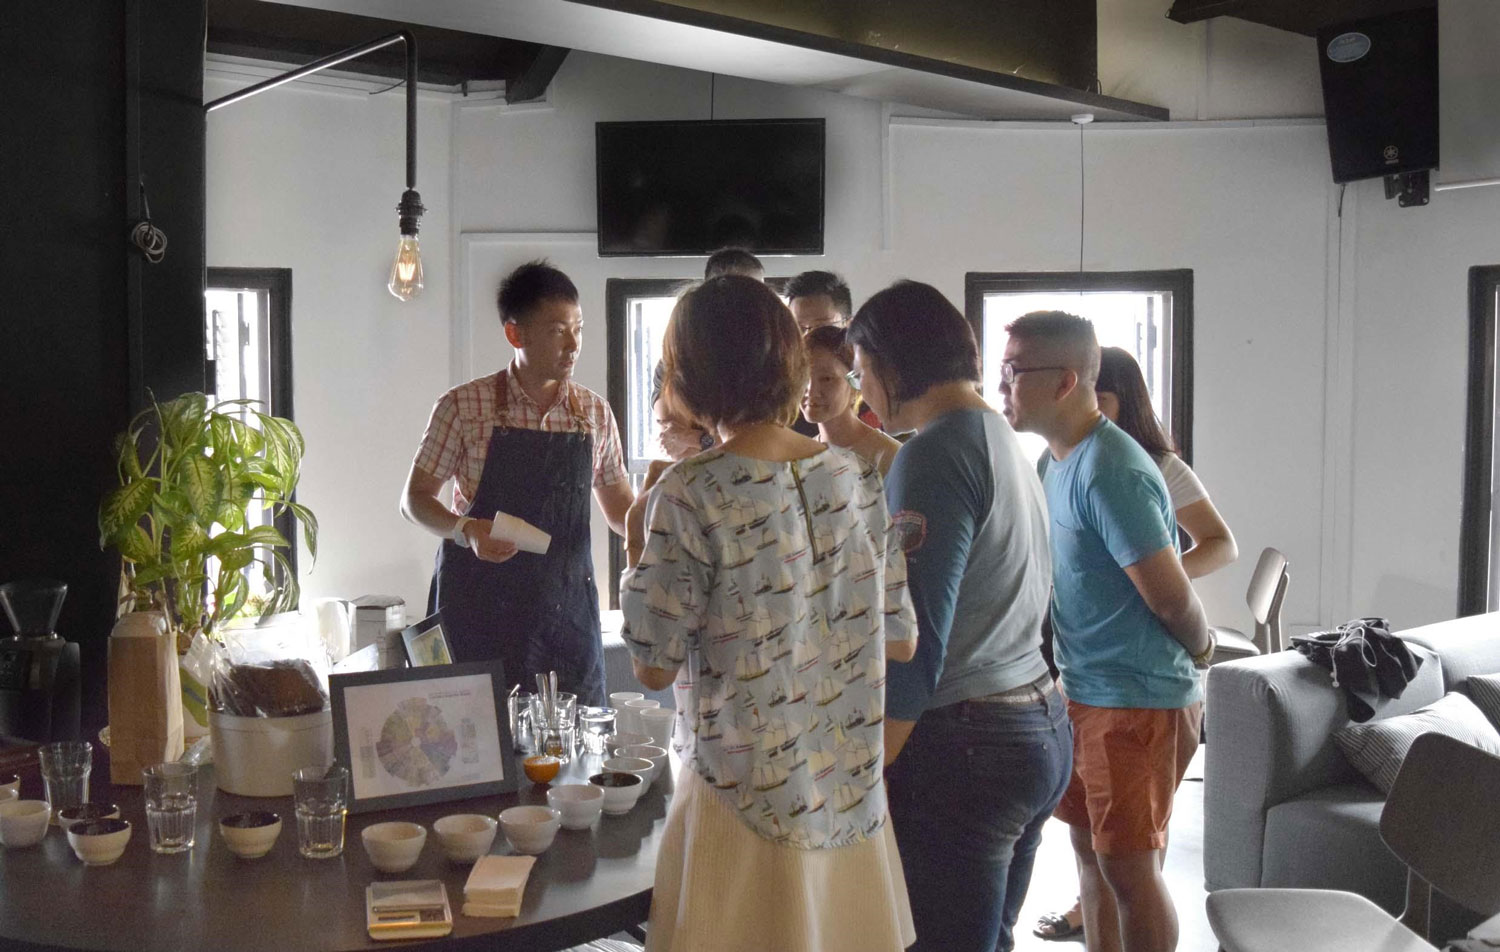 a man leading a coffee cupping session with a group of people.